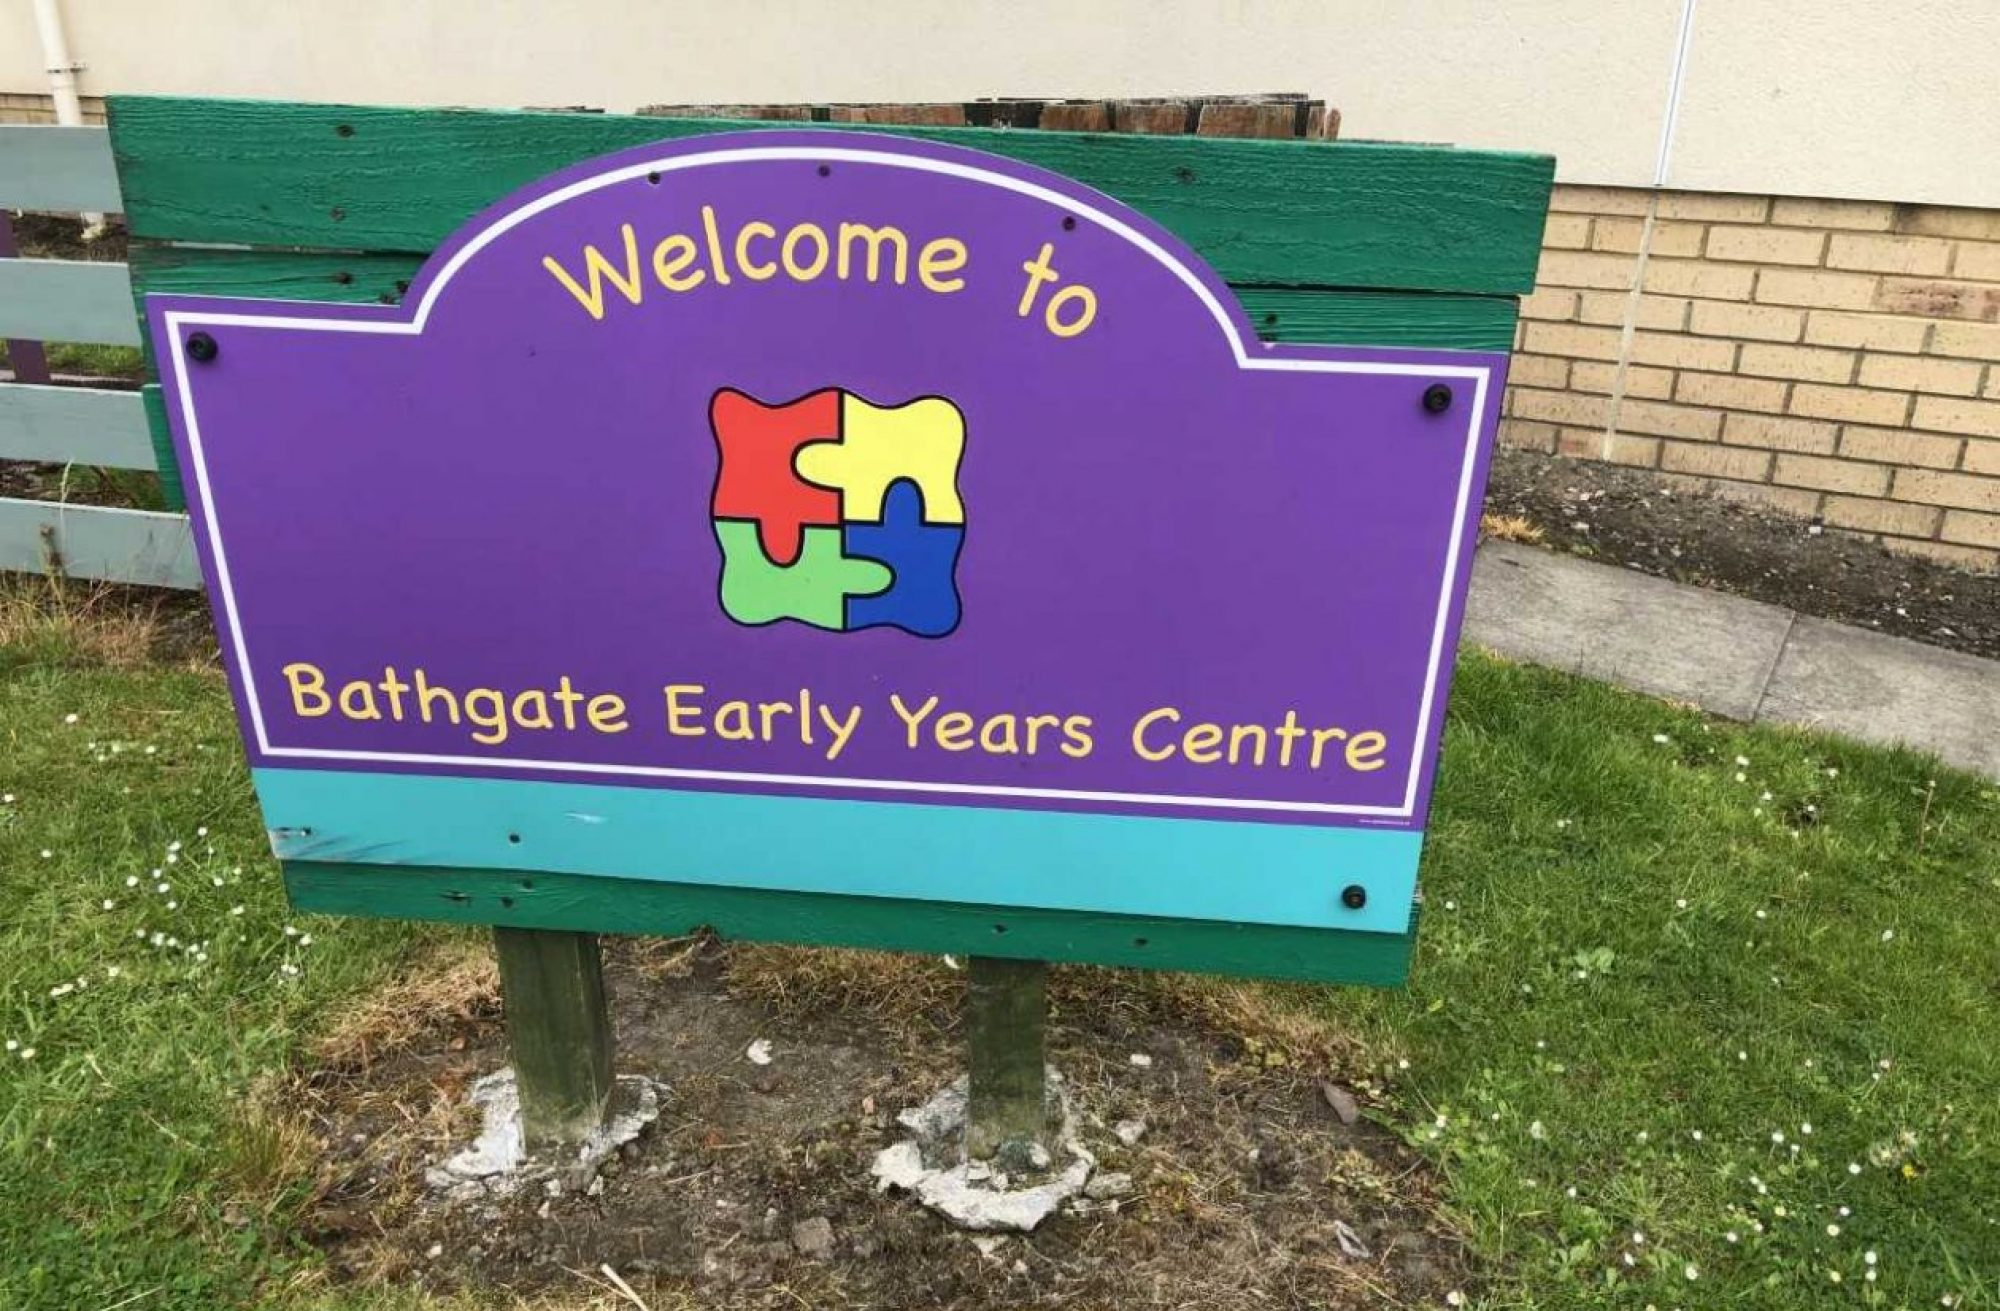 Bathgate Early Years Centre